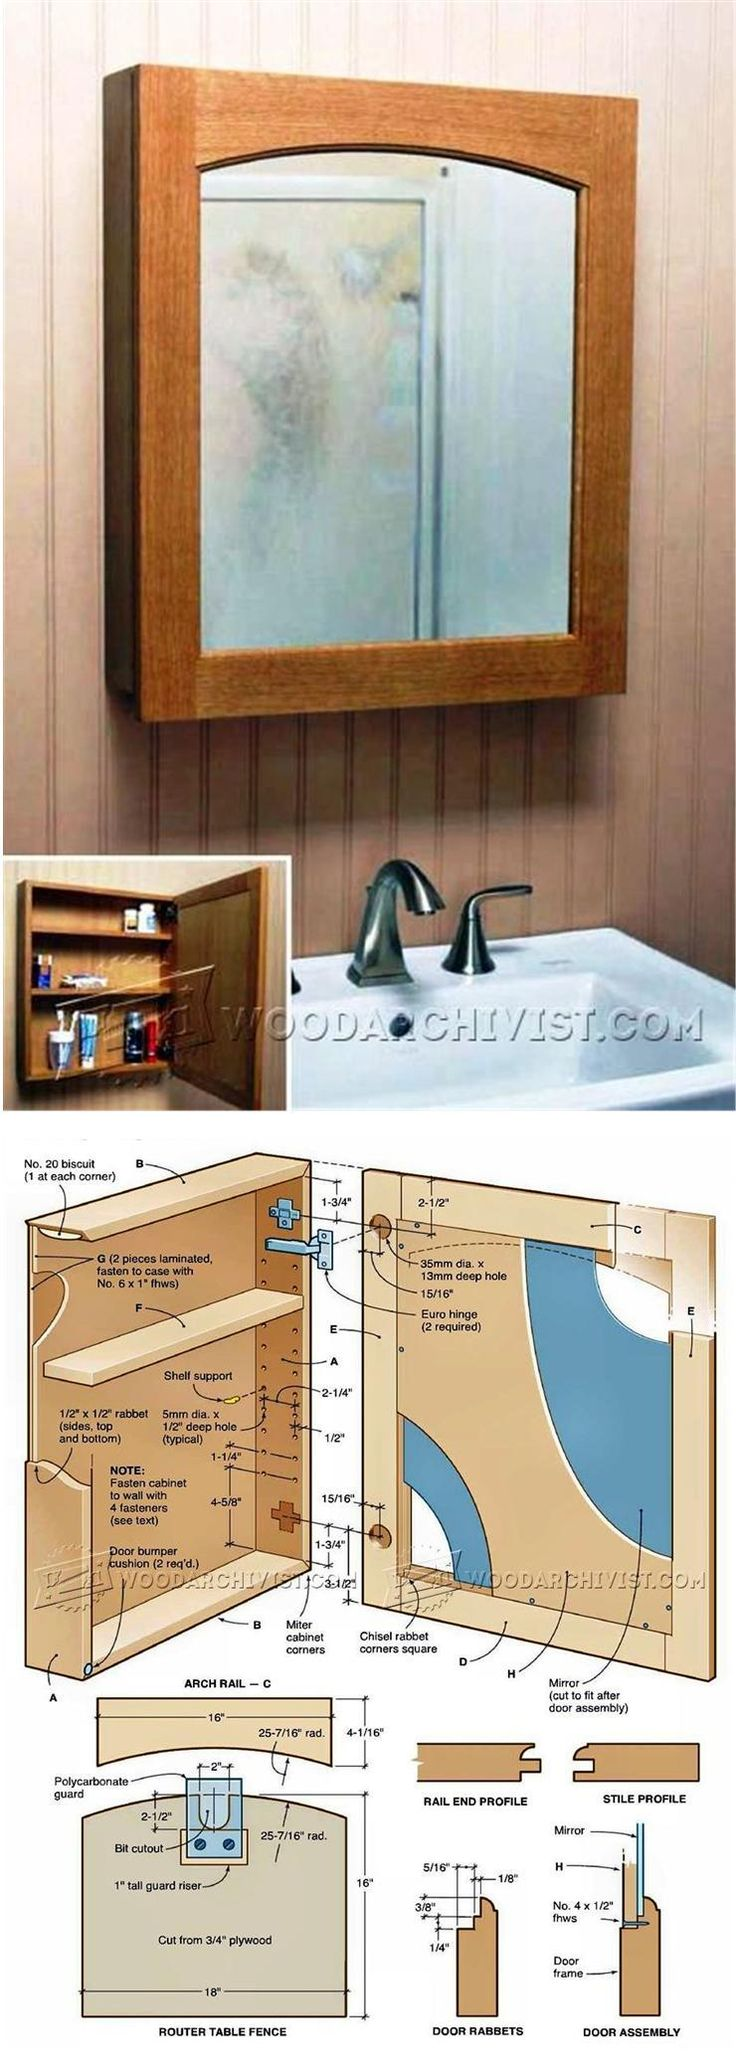 Bathroom cabinet plans - Classic Medicine Cabinet Plans Furniture Plans And Projects Woodarchivist Com